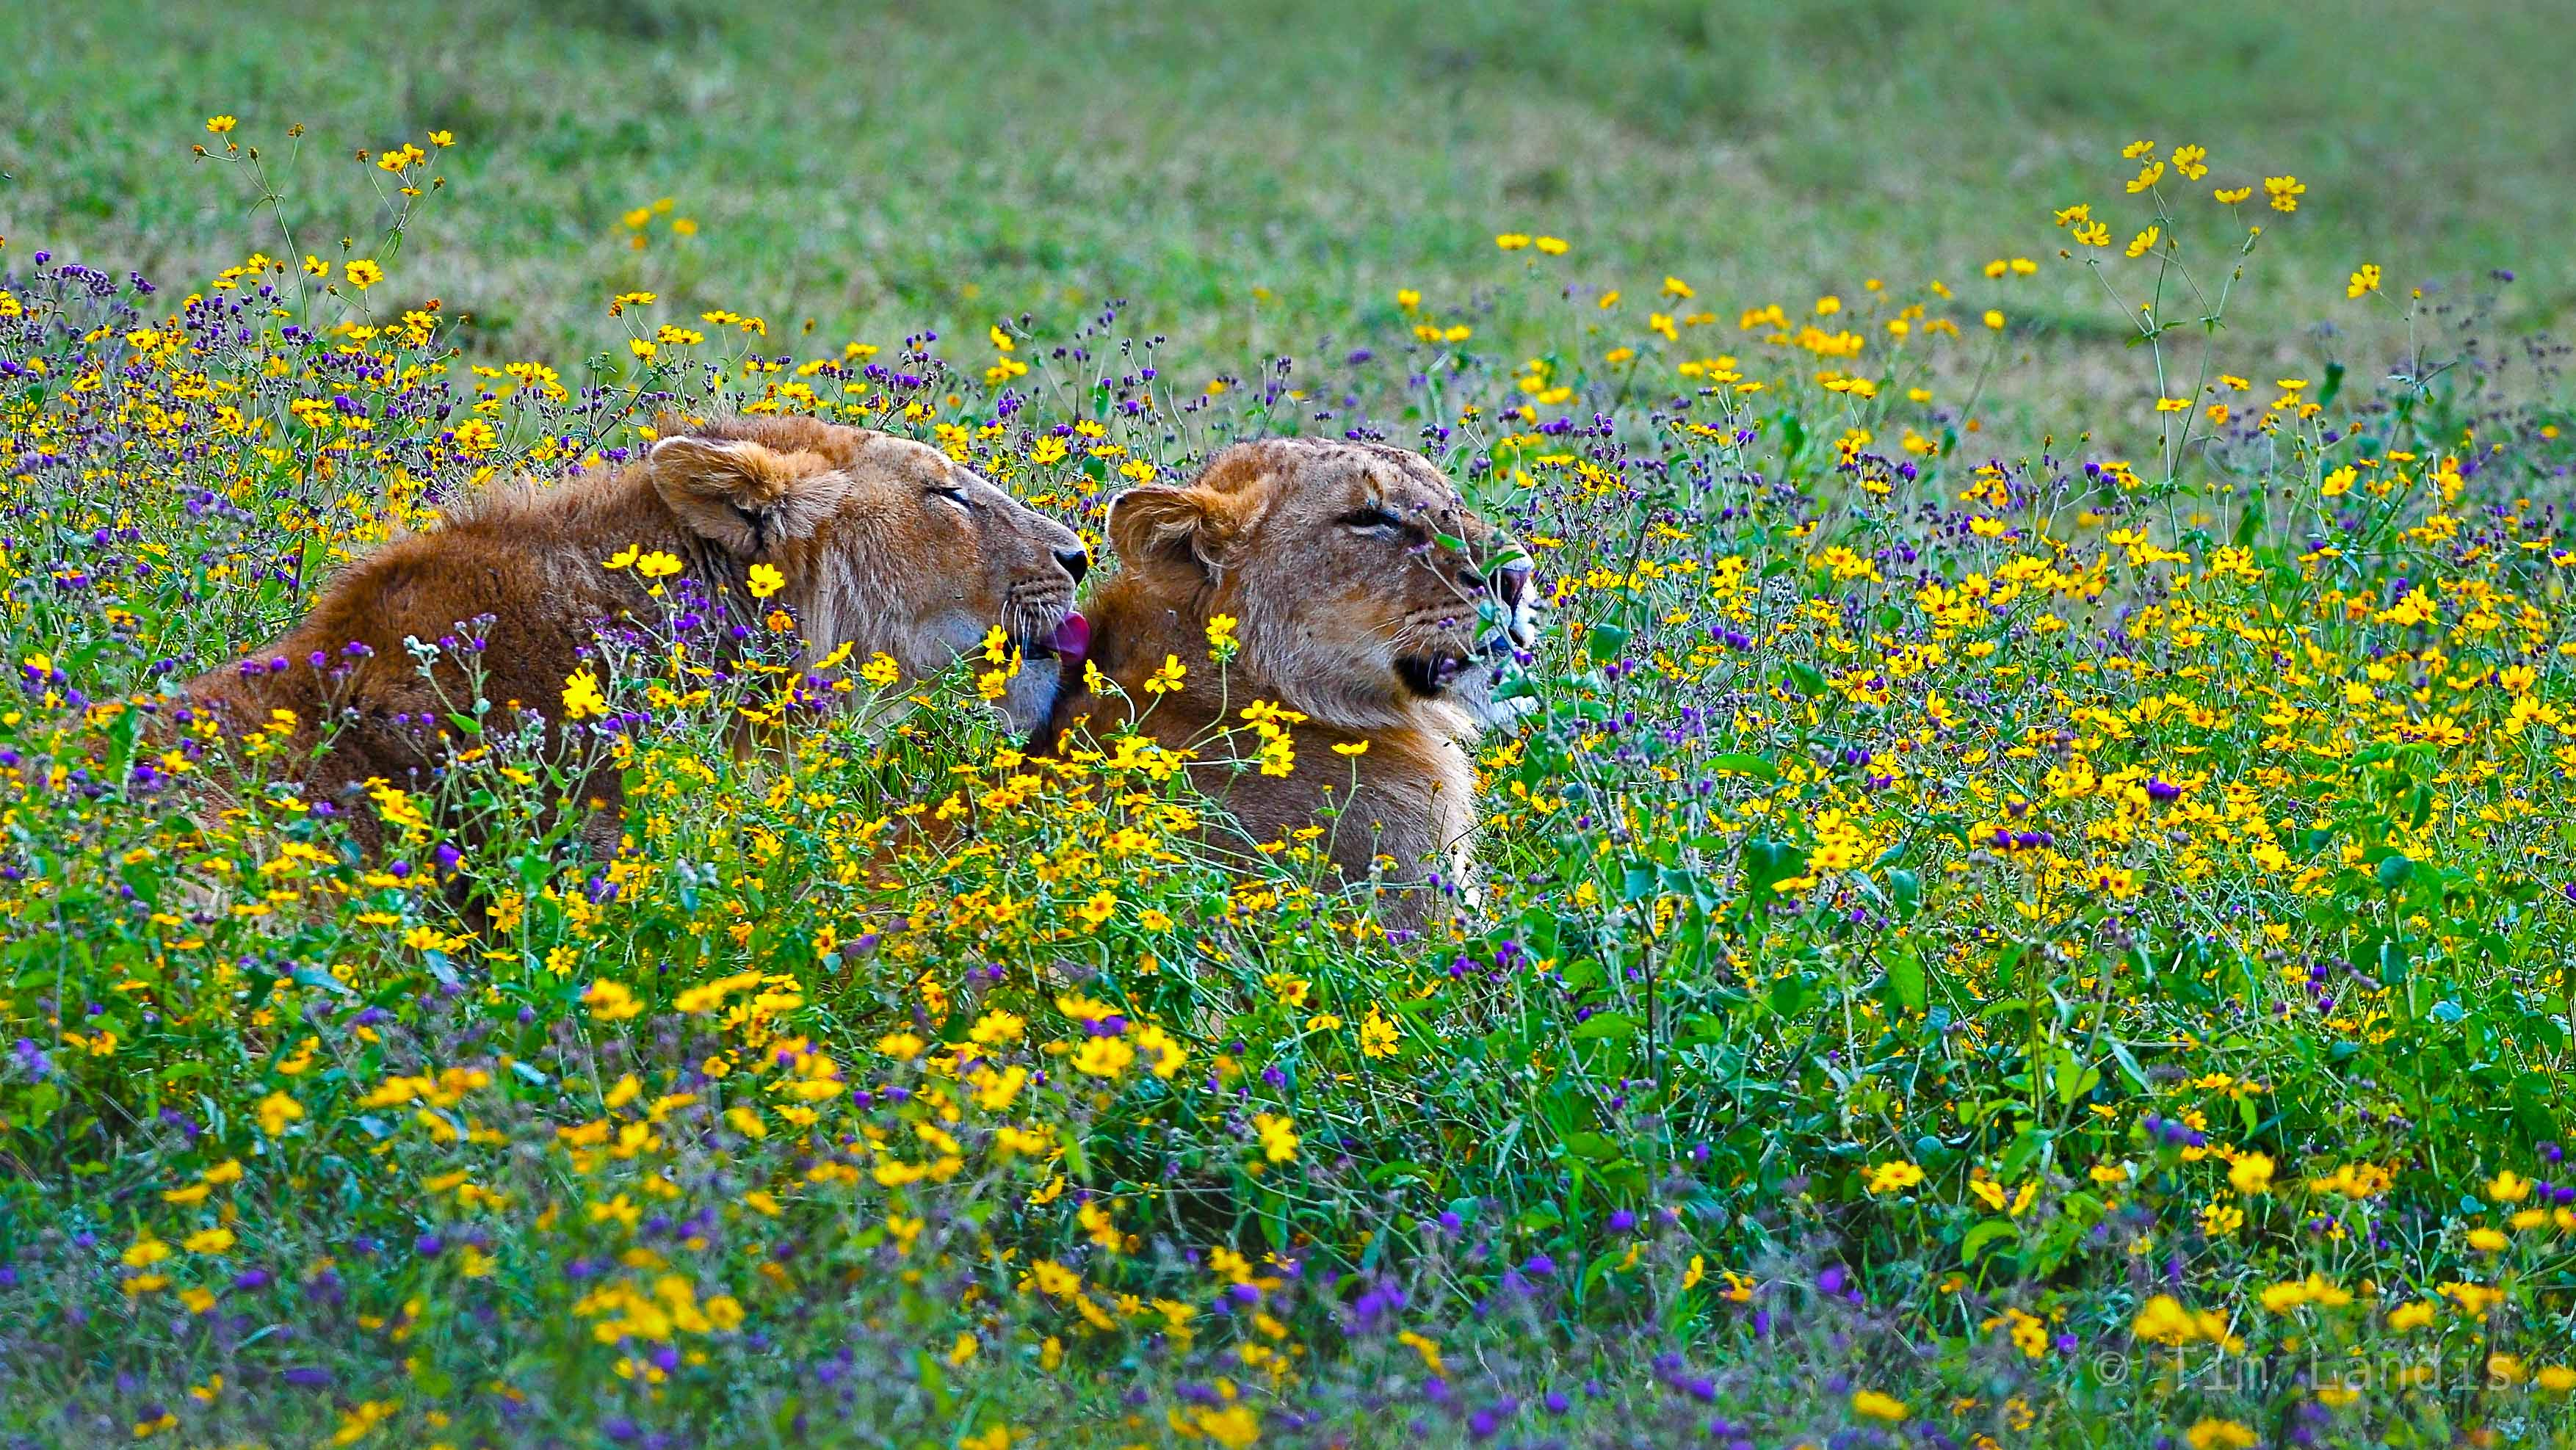 lions sharing the love,, photo